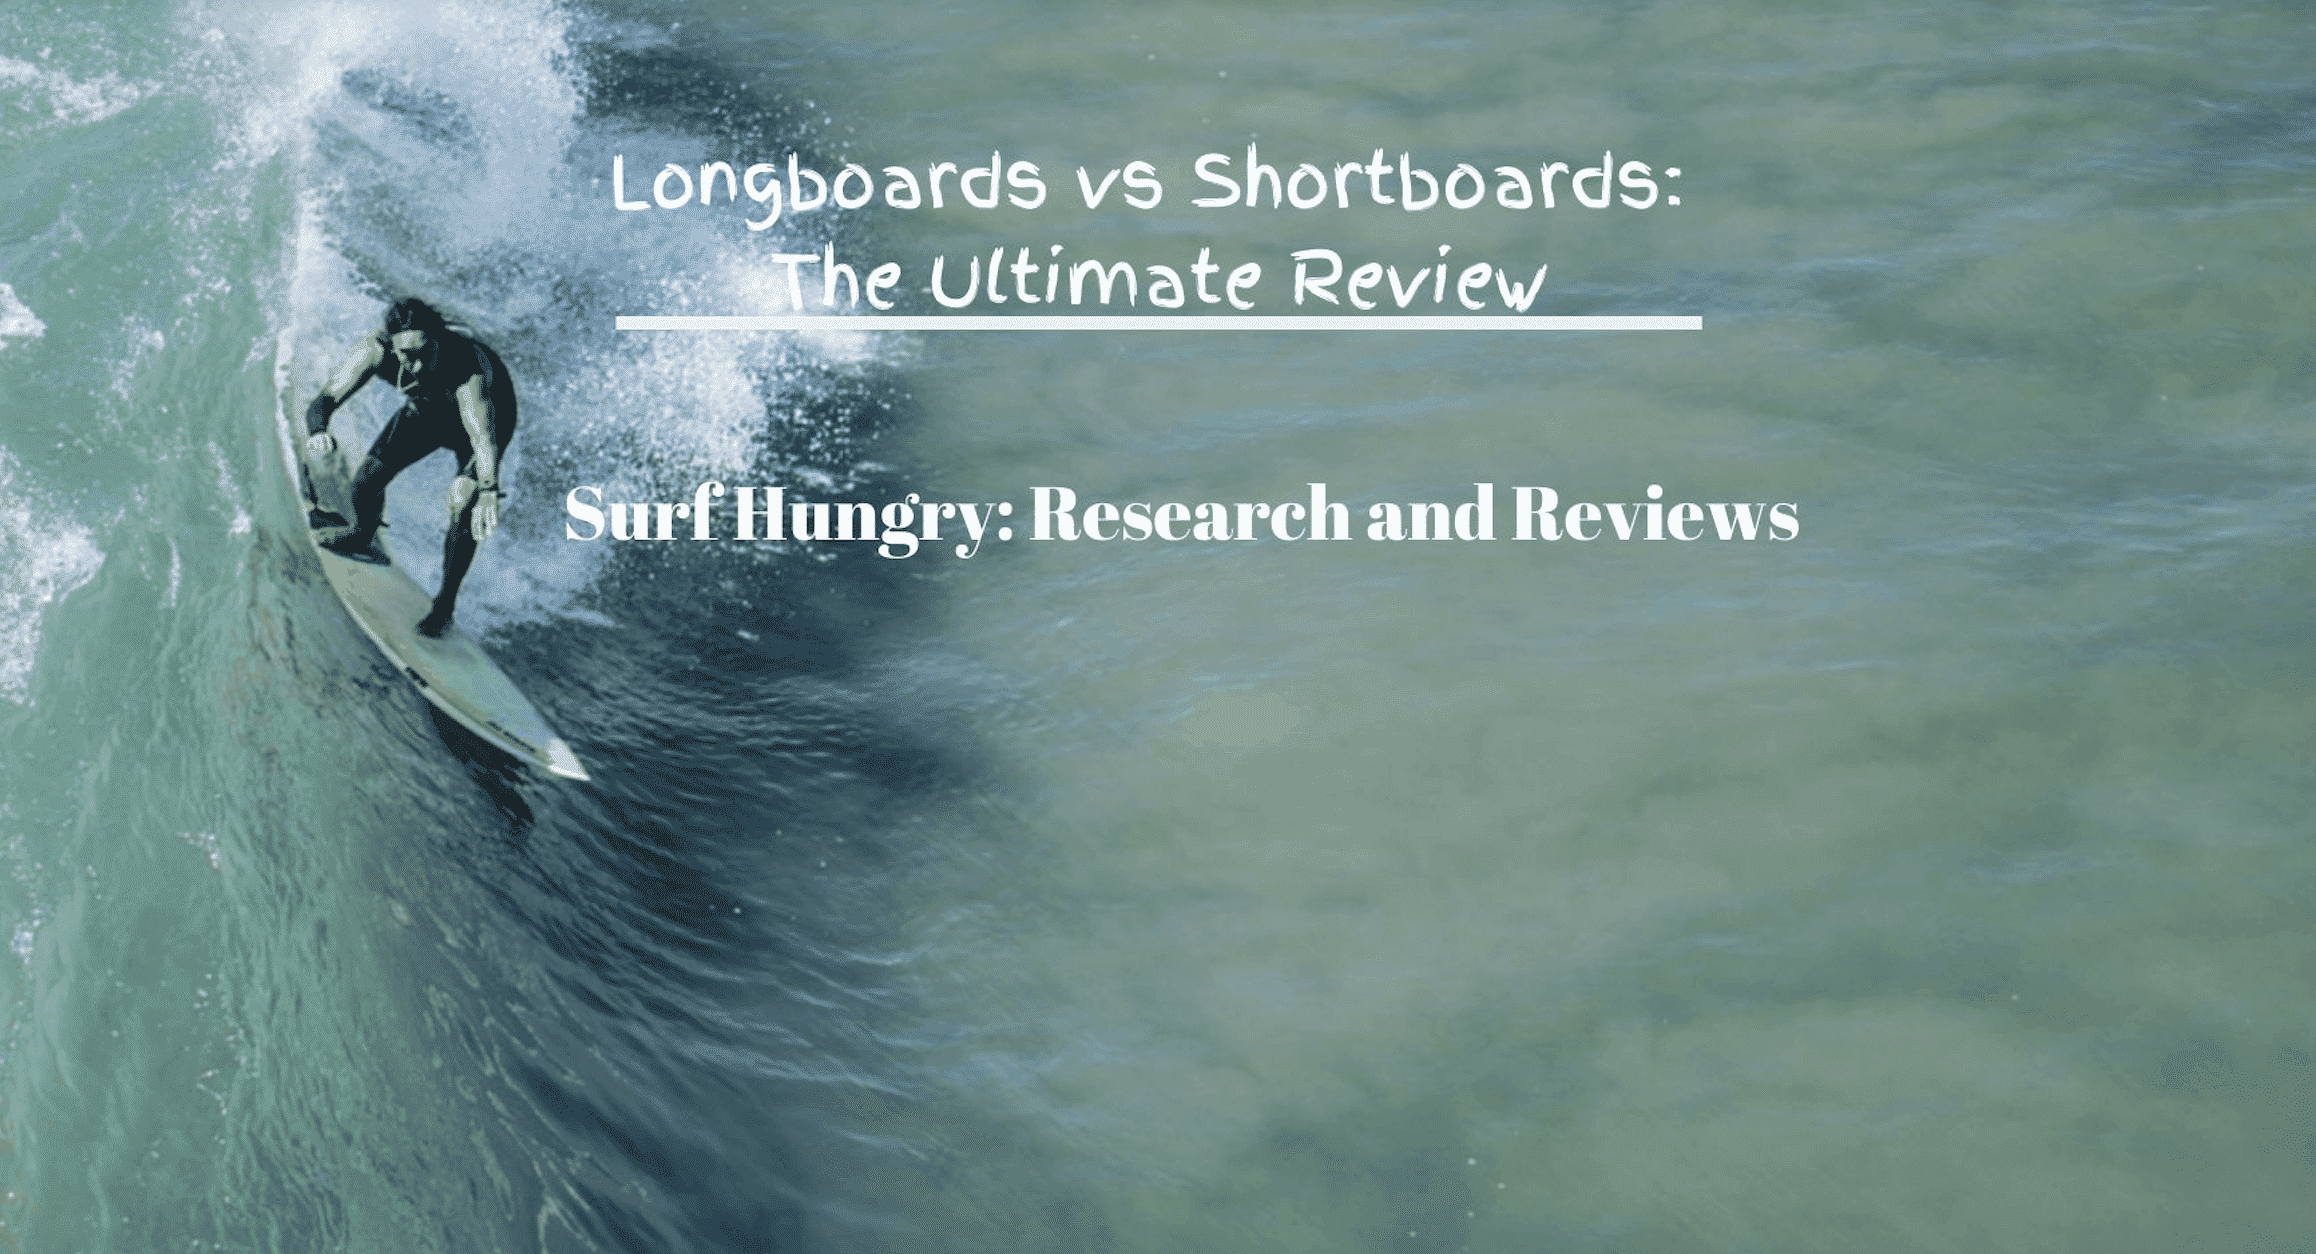 longboards vs shortboards